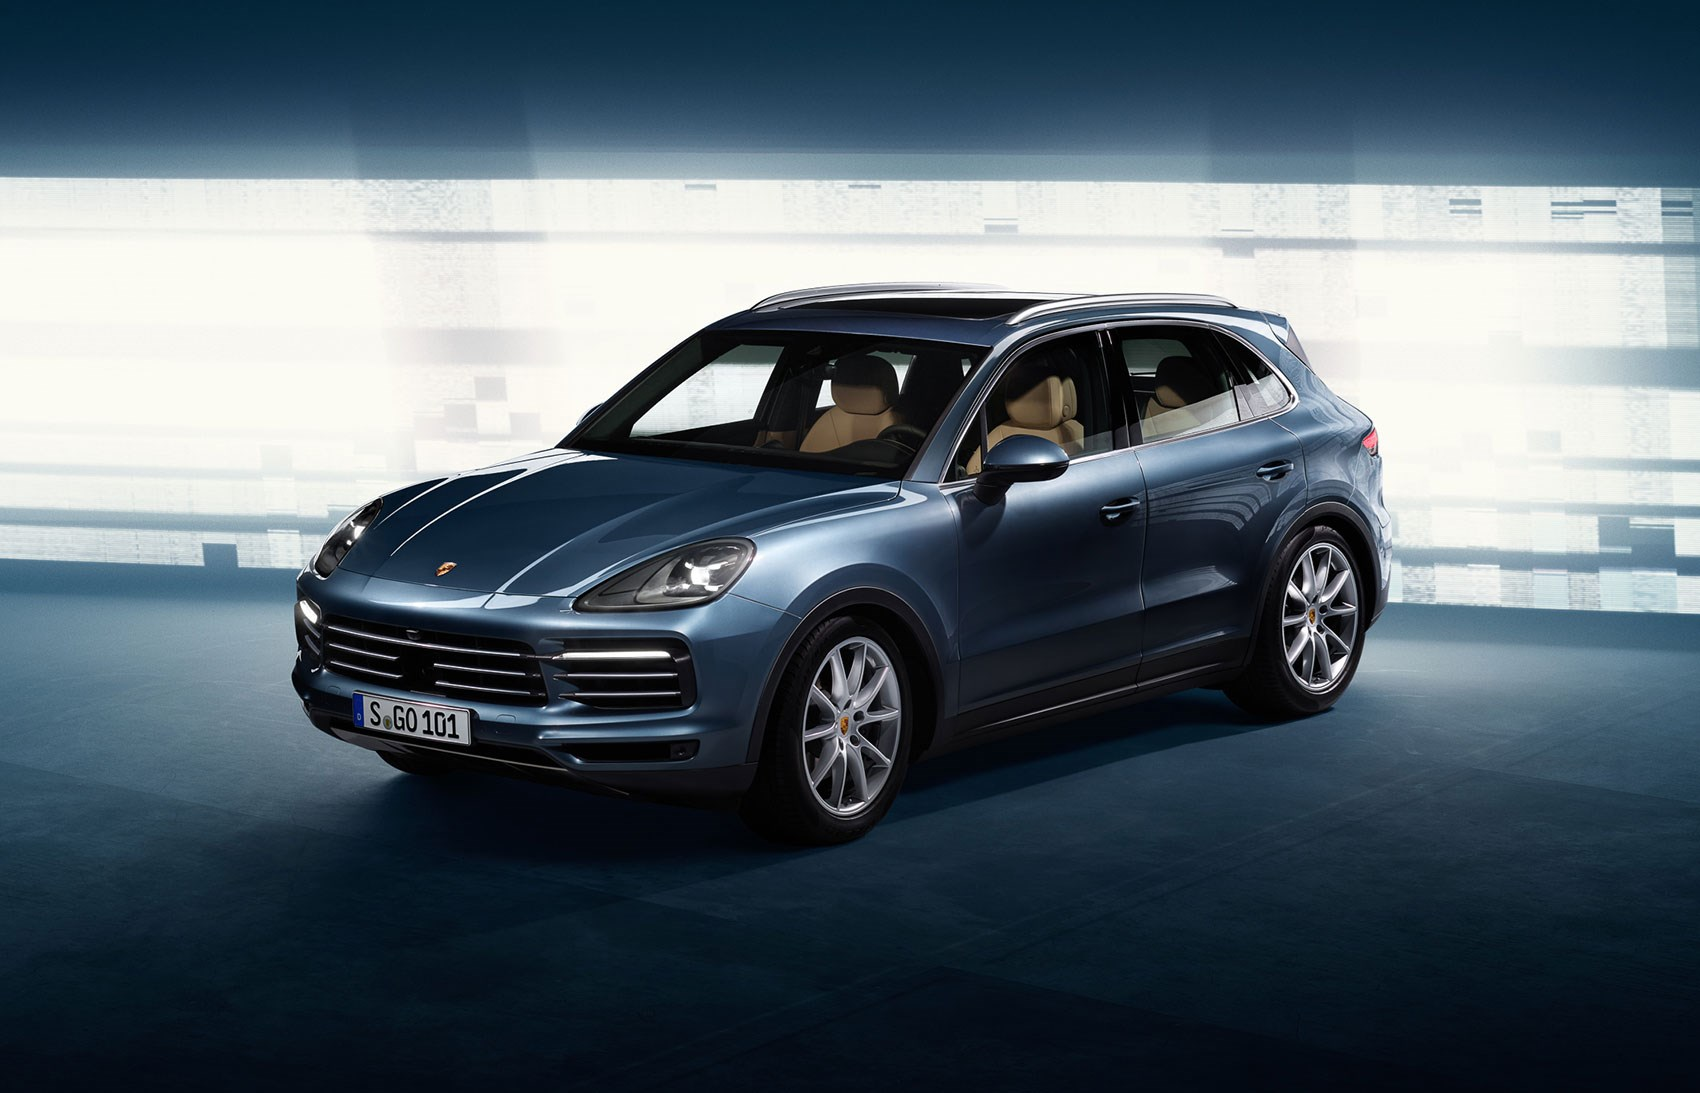 Porsche Cayenne Price In India GST Rates Specs Mileage Images